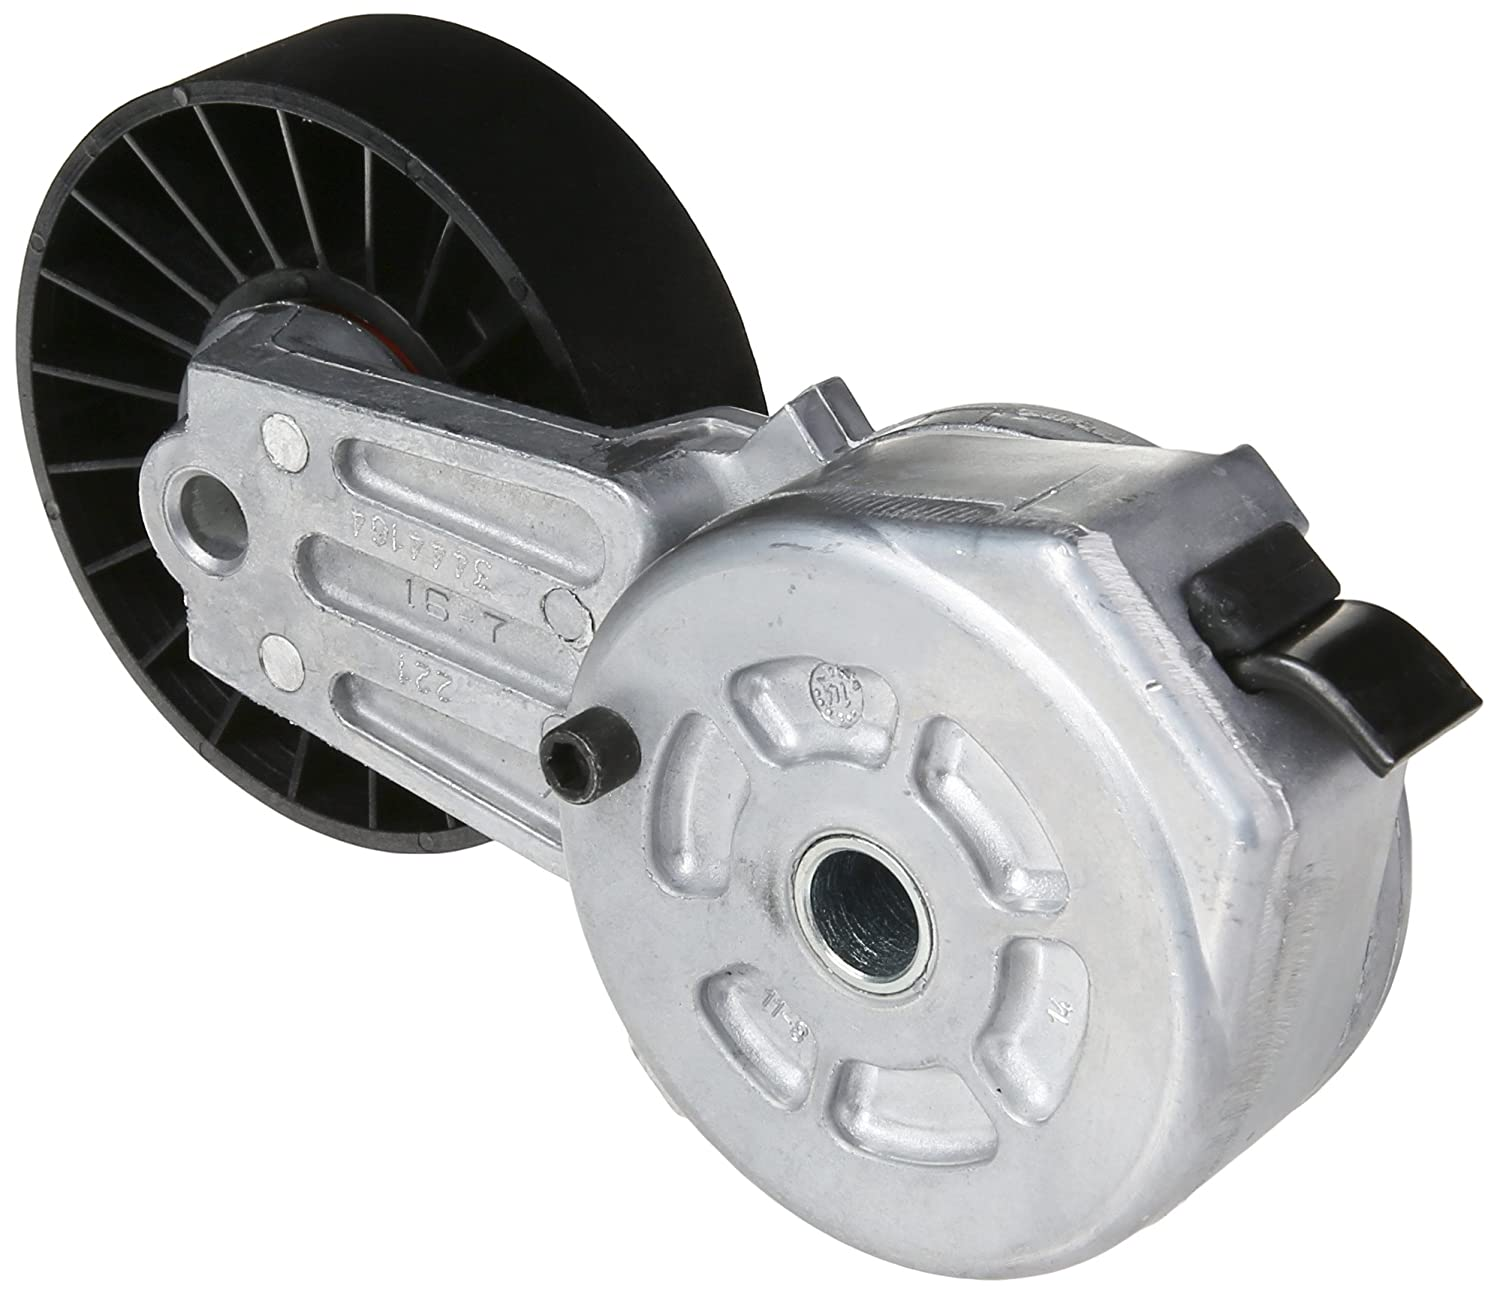 Dayco 89221 Automatic Belt Tensioner